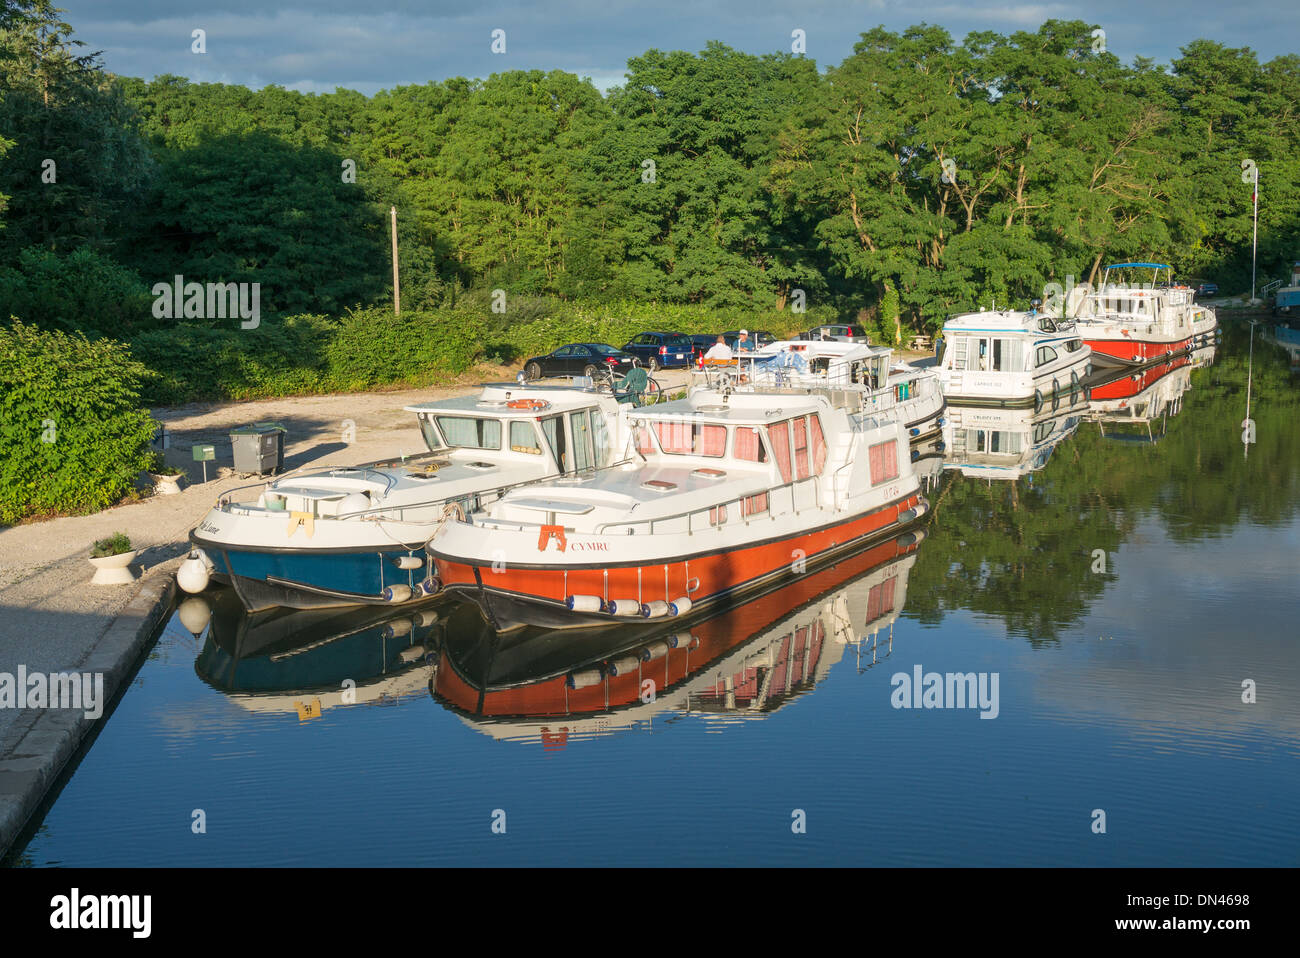 Canal cruisers moored in the Canal du Centre near Chagny - Stock Image